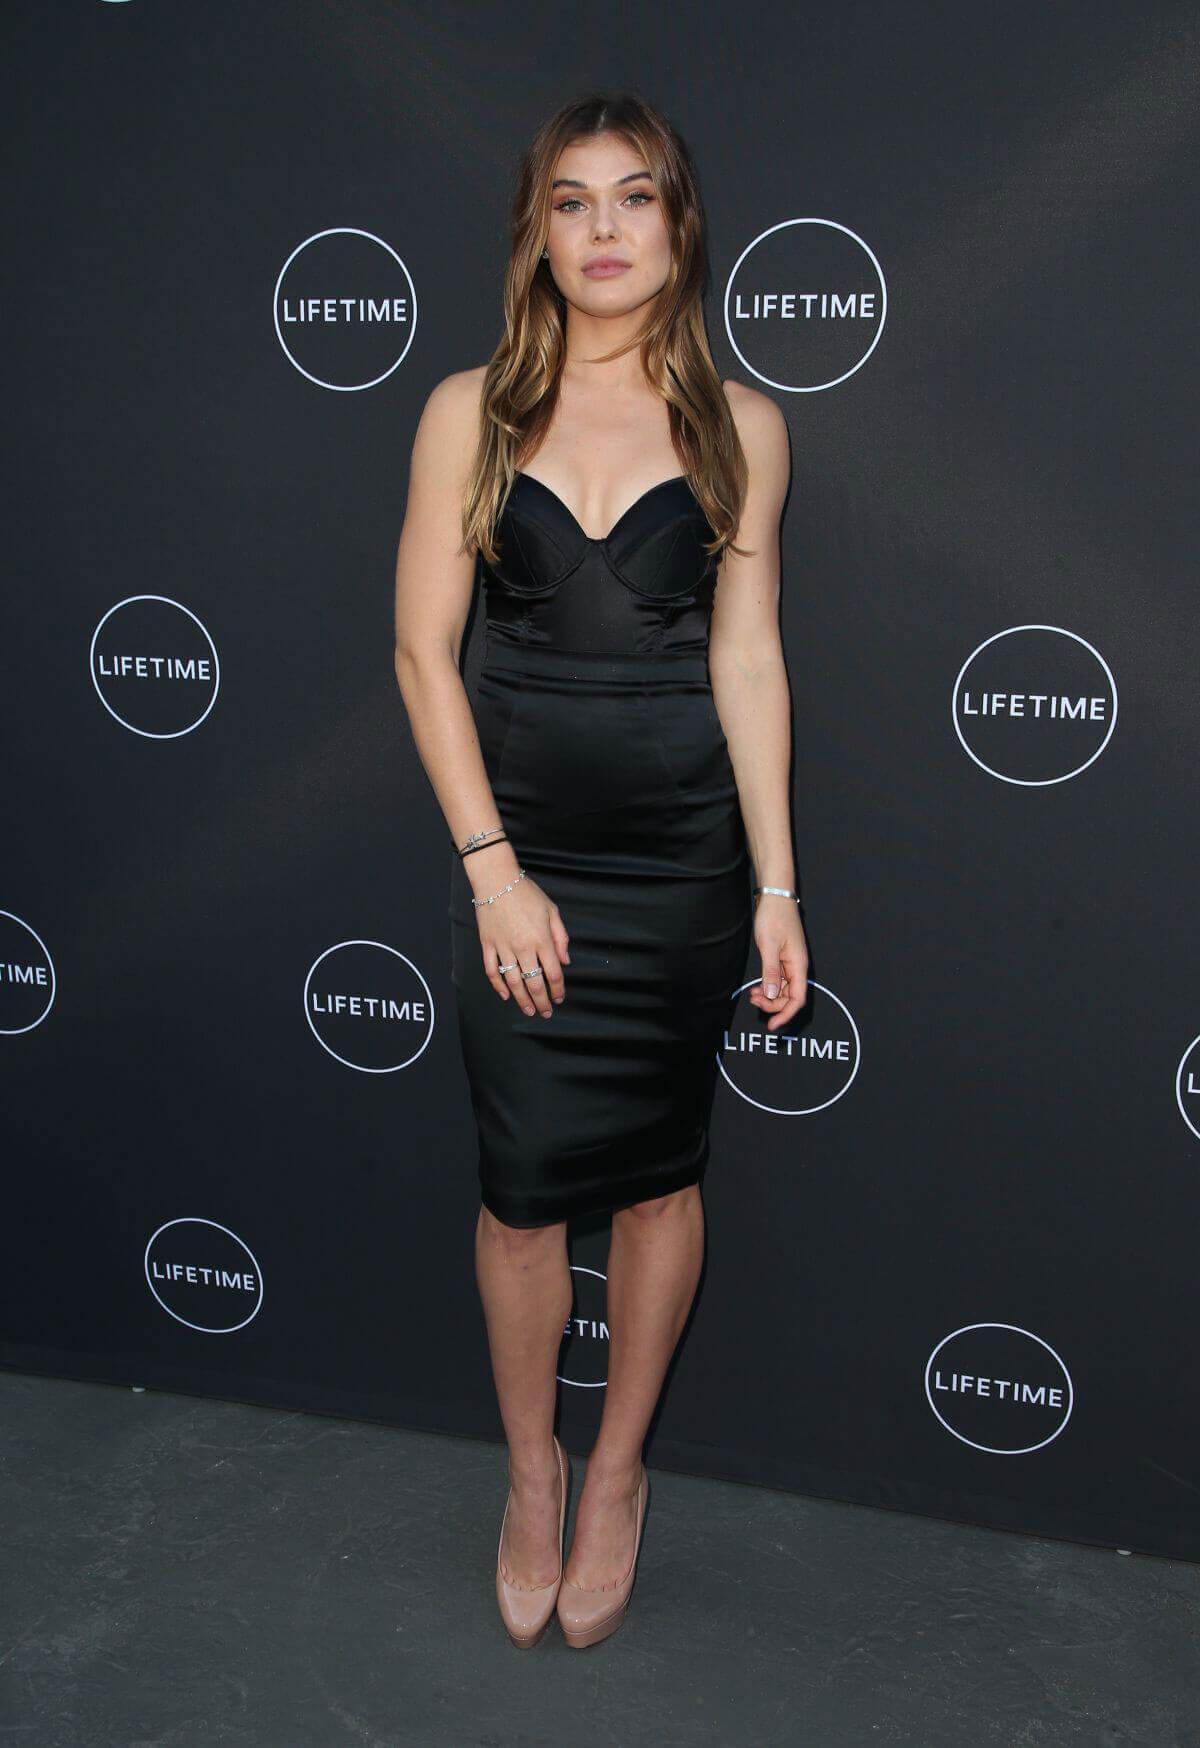 Cambrie Schroder wears black dress at Growing Up Supermodel Premiere in Studio City